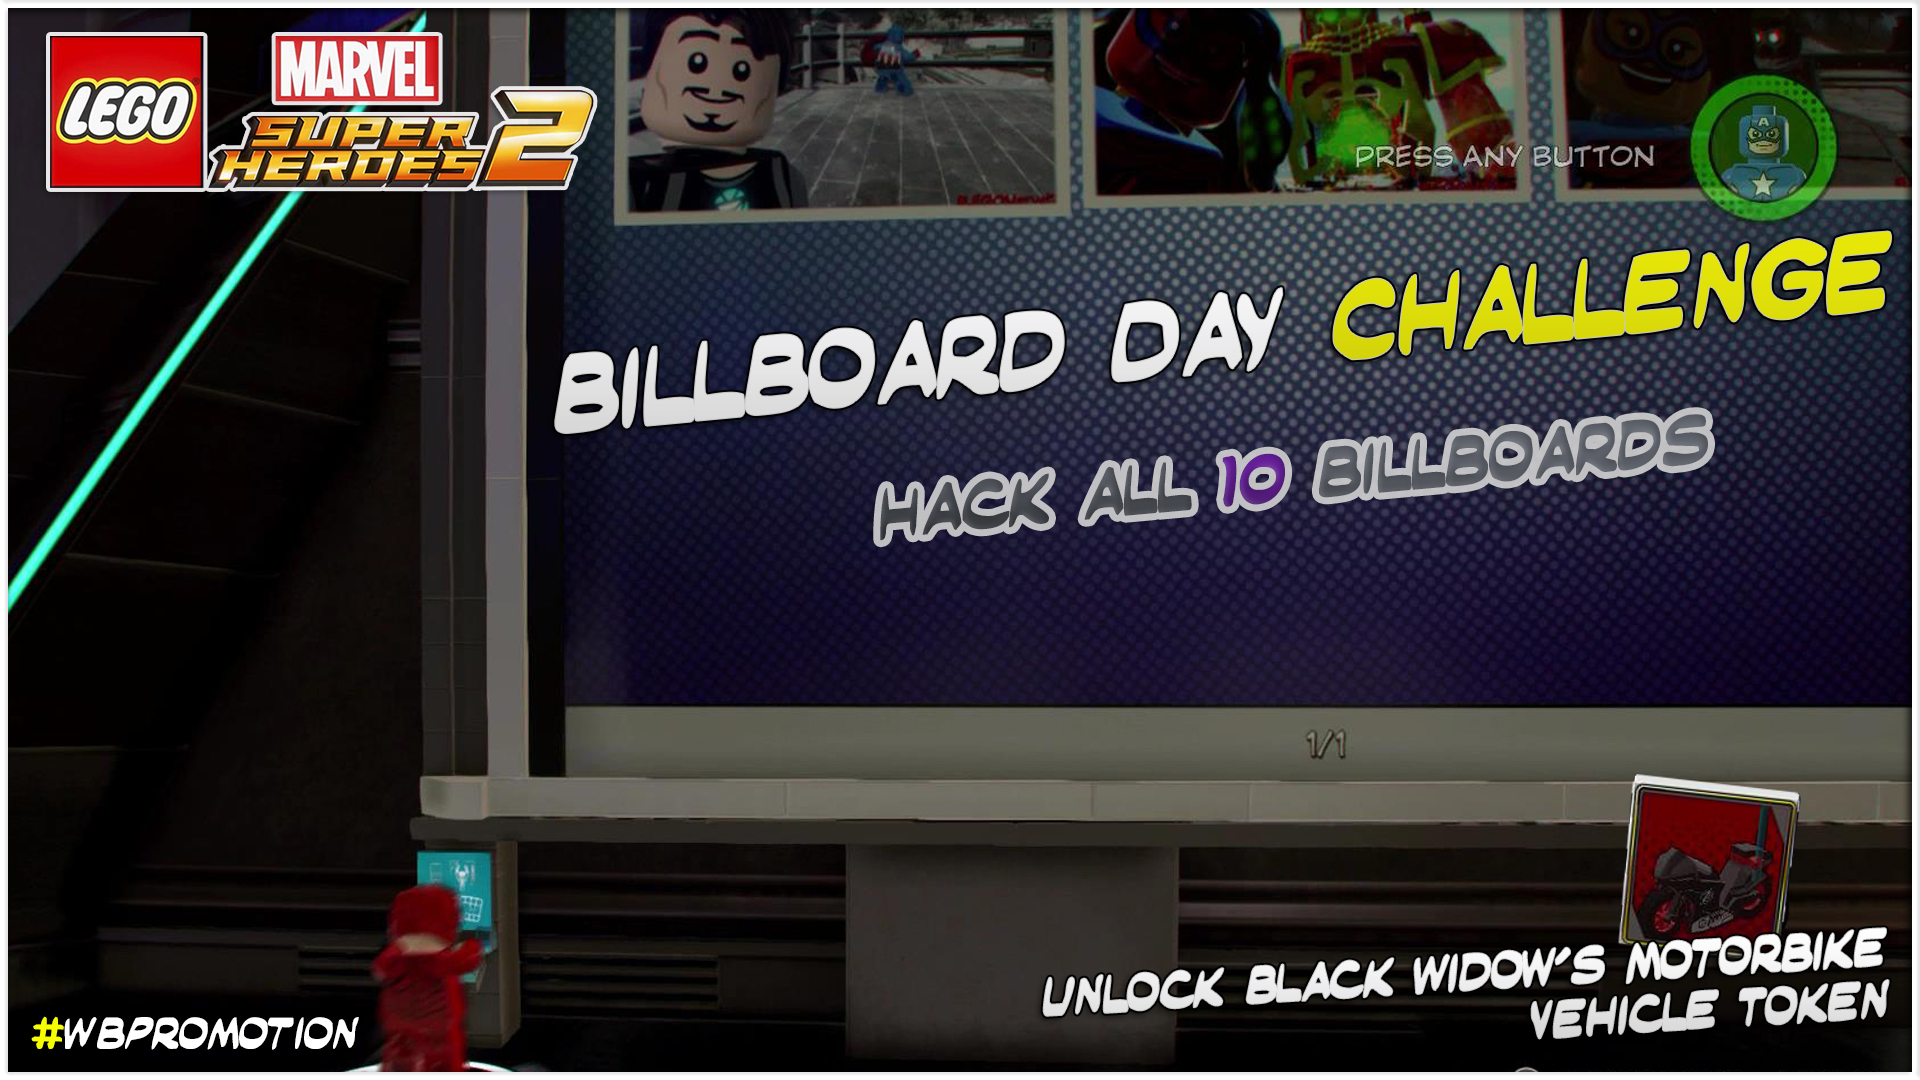 BillboardDayChallenge Thumb